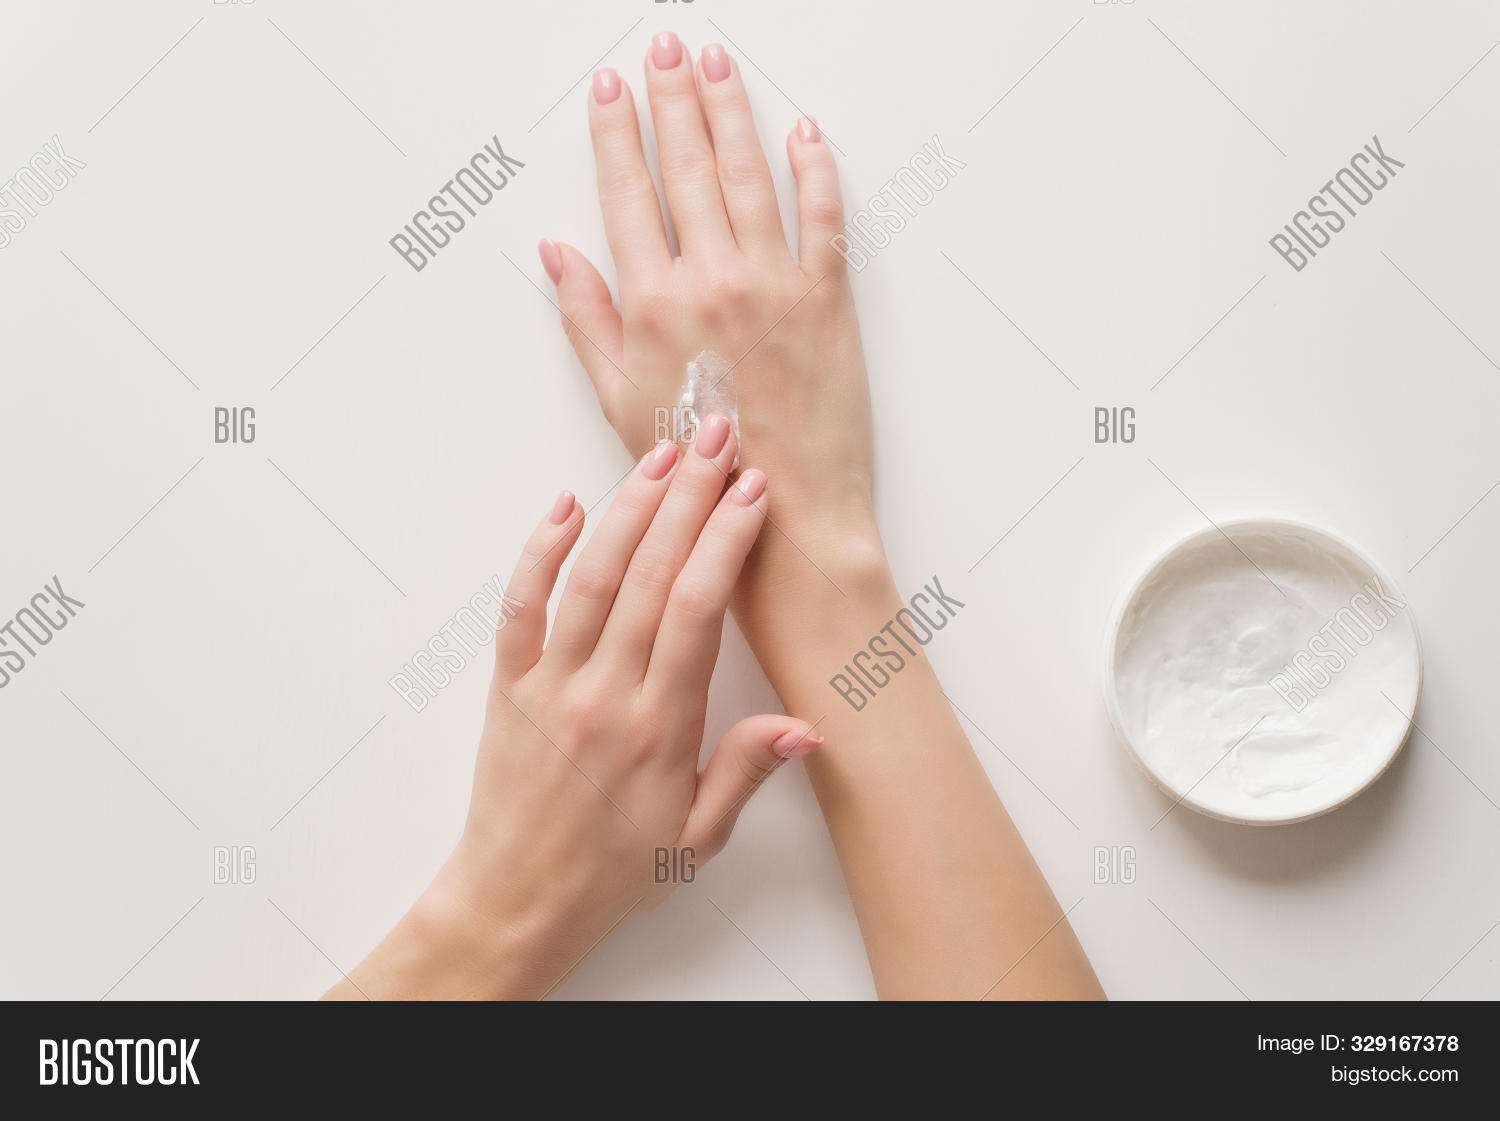 above,aging,anti,apply,arm,beauty,body,care,caucasian,clean,closeup,copy,cosmetic,cosmetology,cream,female,finger,flat,fresh,girl,hand,health,healthy,holiday,human,hygiene,jar,lay,lotion,manicure,massage,moisturizer,moisturizing,nail,natural,protection,skin,smear,spa,spring,sun,table,tenderness,top,treatment,view,wellness,white,woman,young